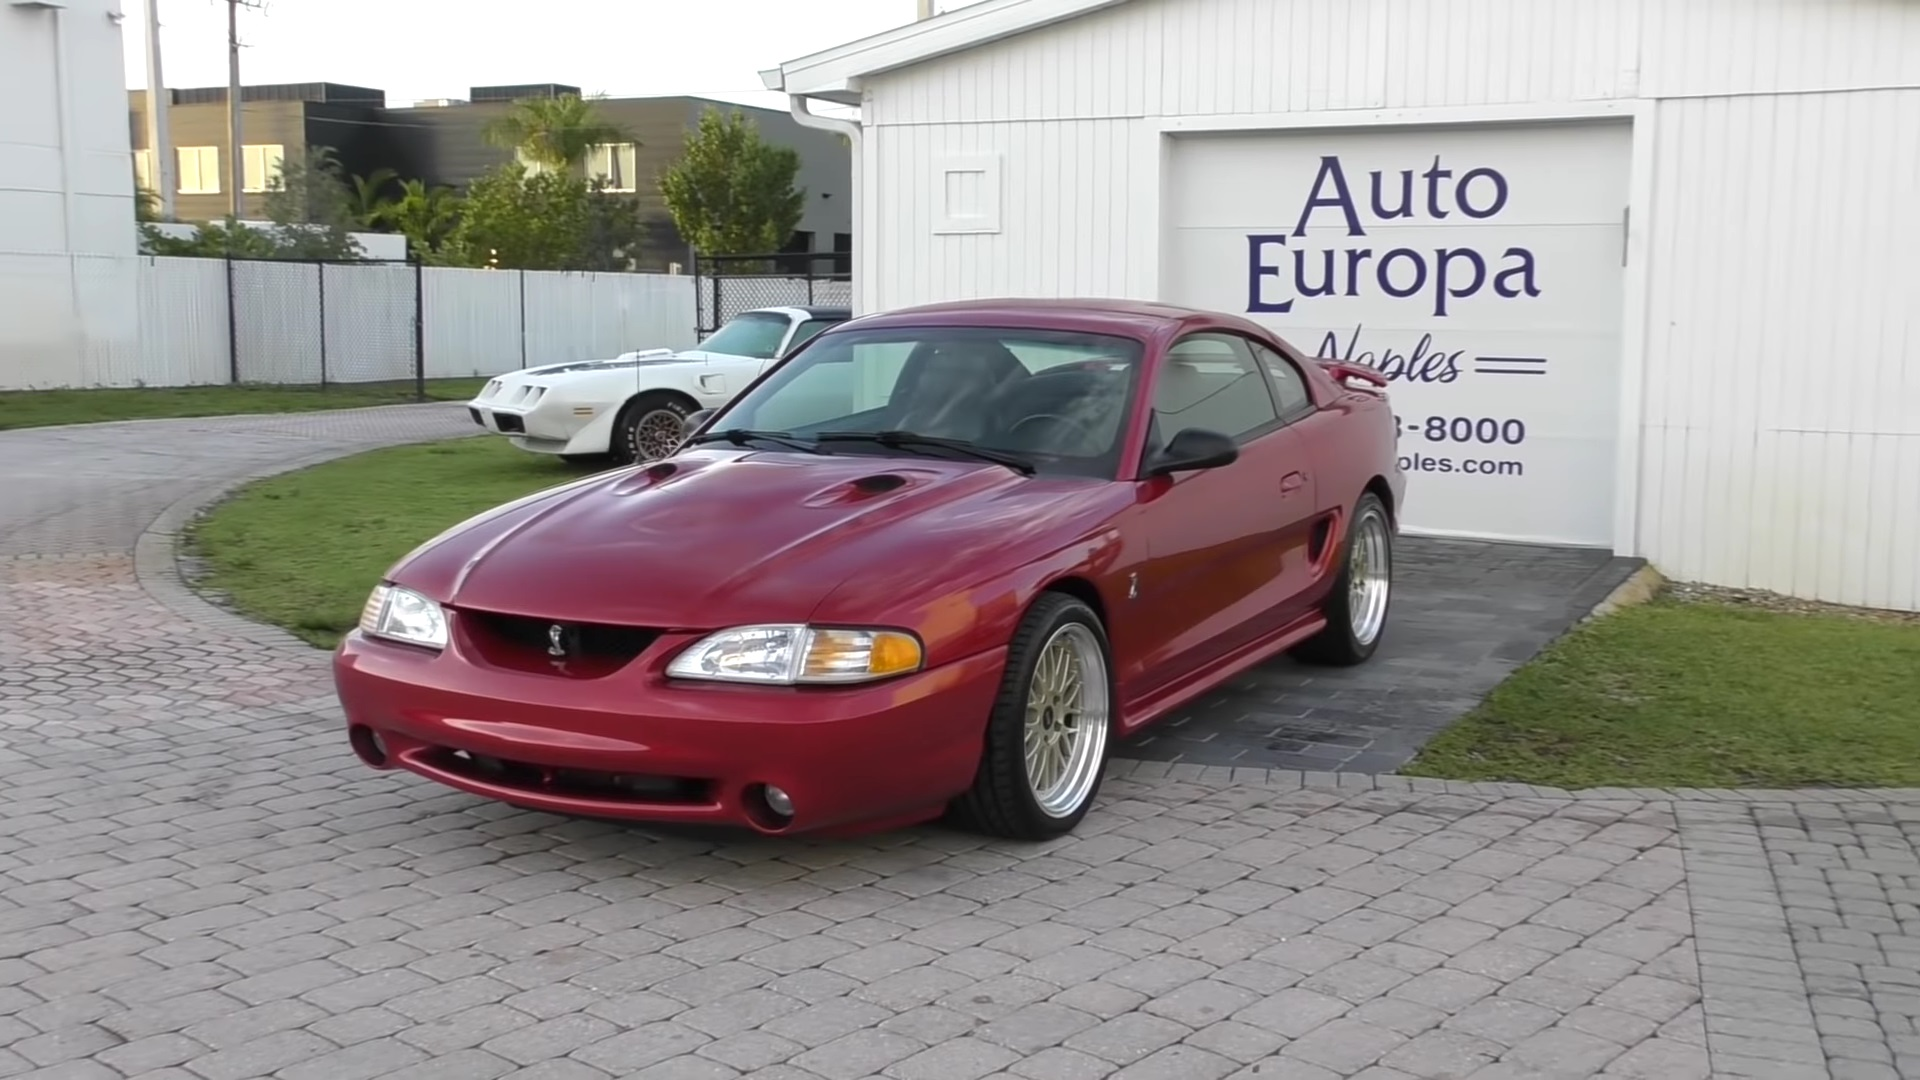 Video: 1996 Ford Mustang SVT Cobra Review + Test Drive